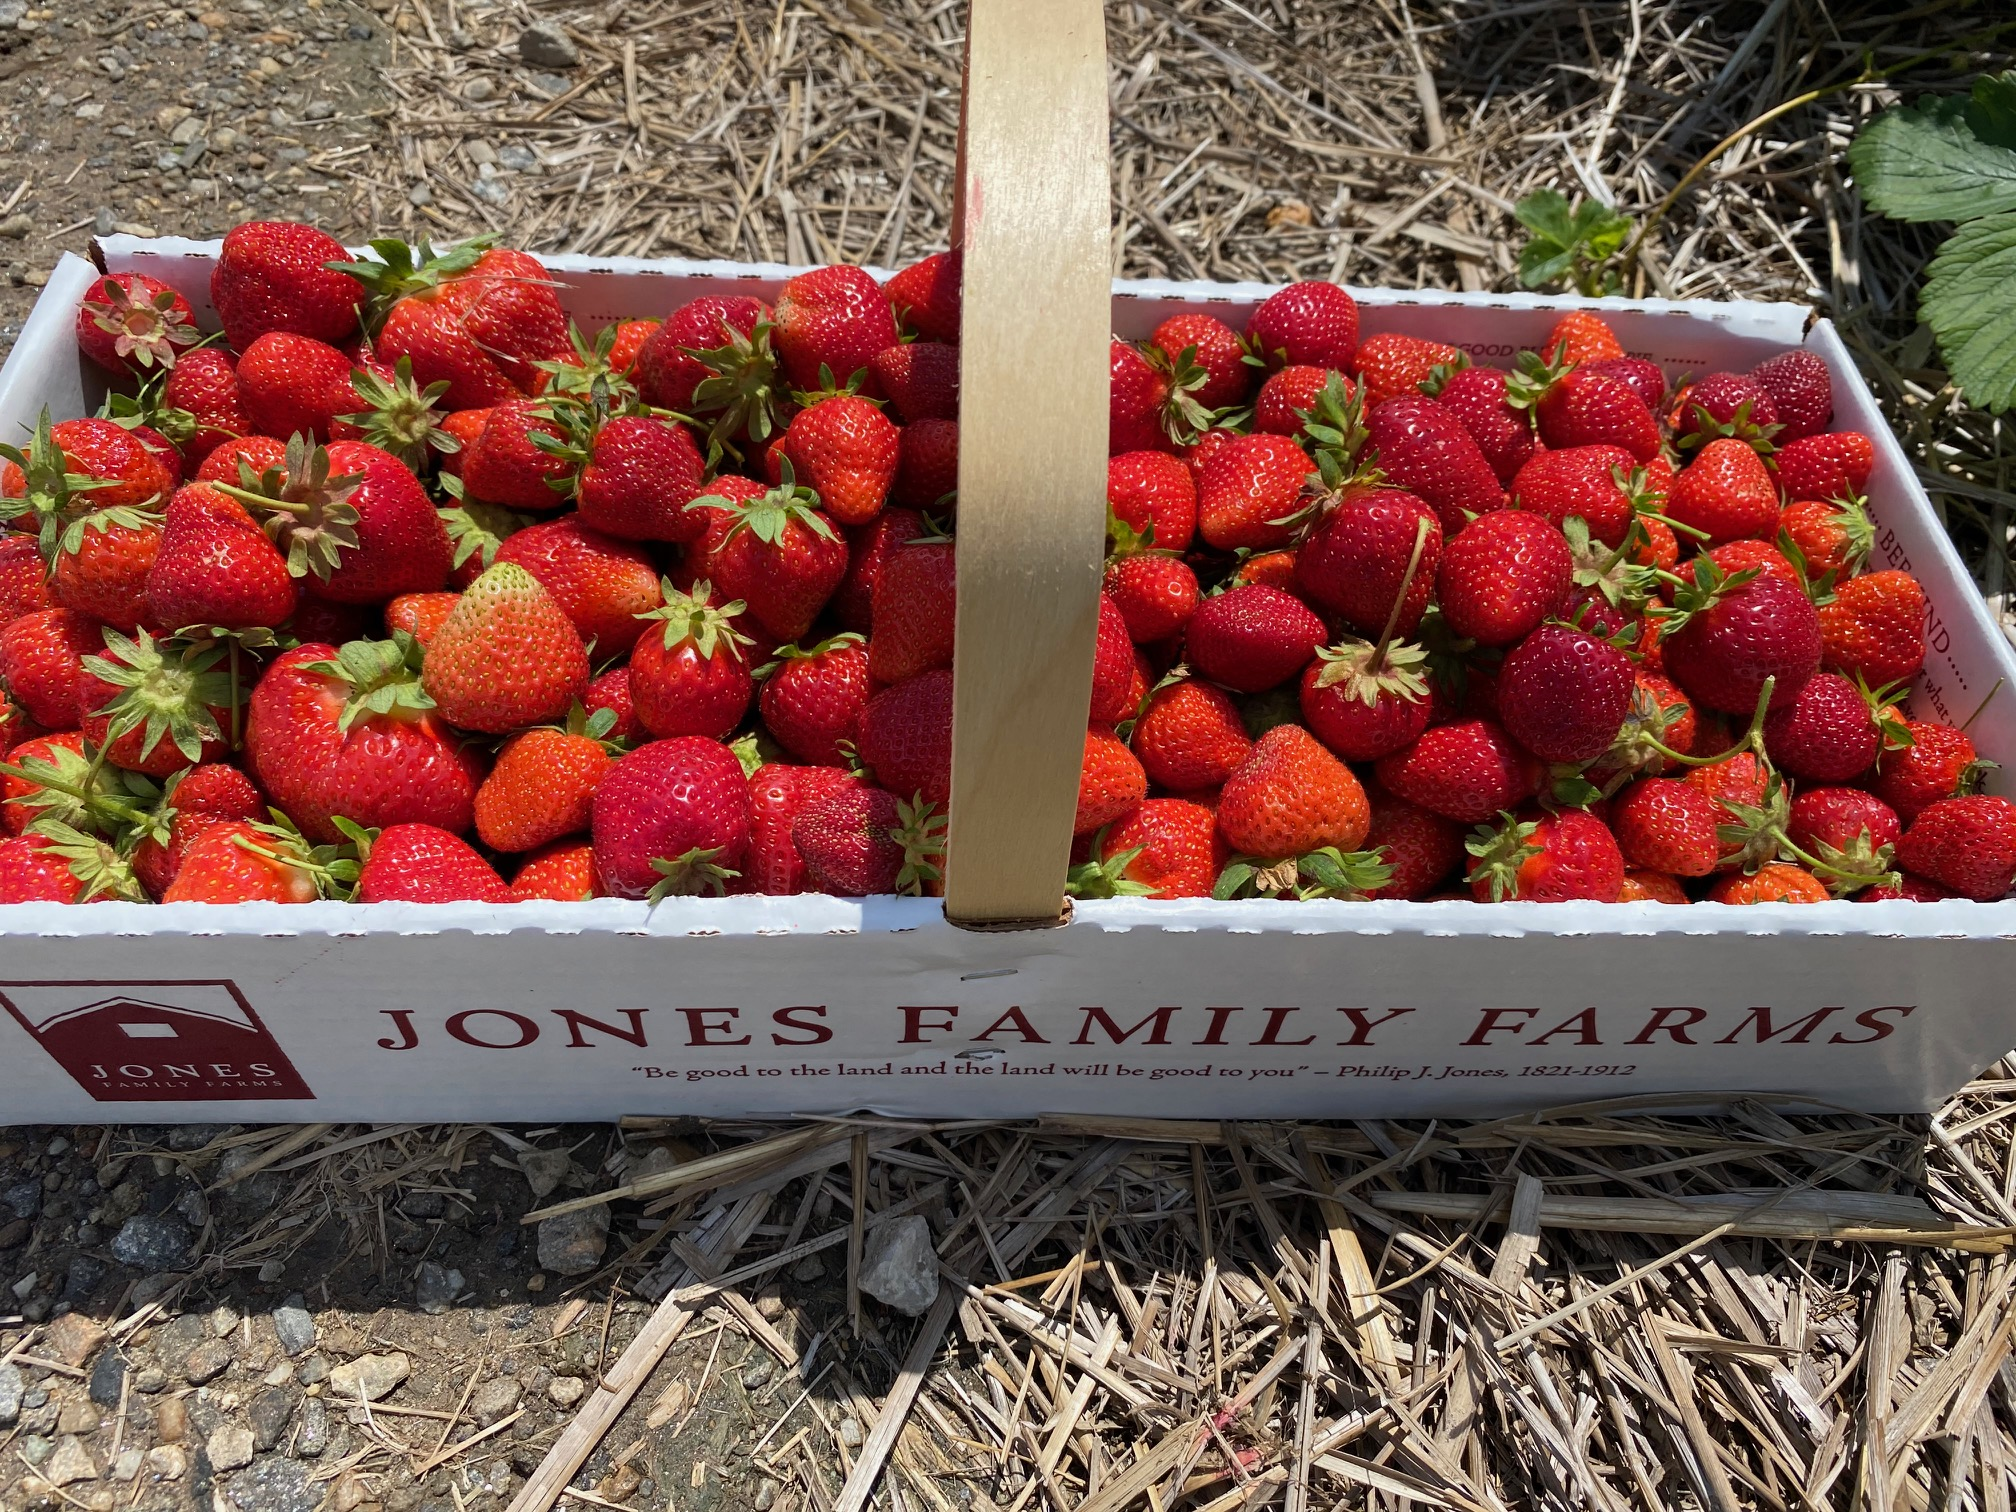 Strawberry Picking at Jones Farm: What You Need to Know